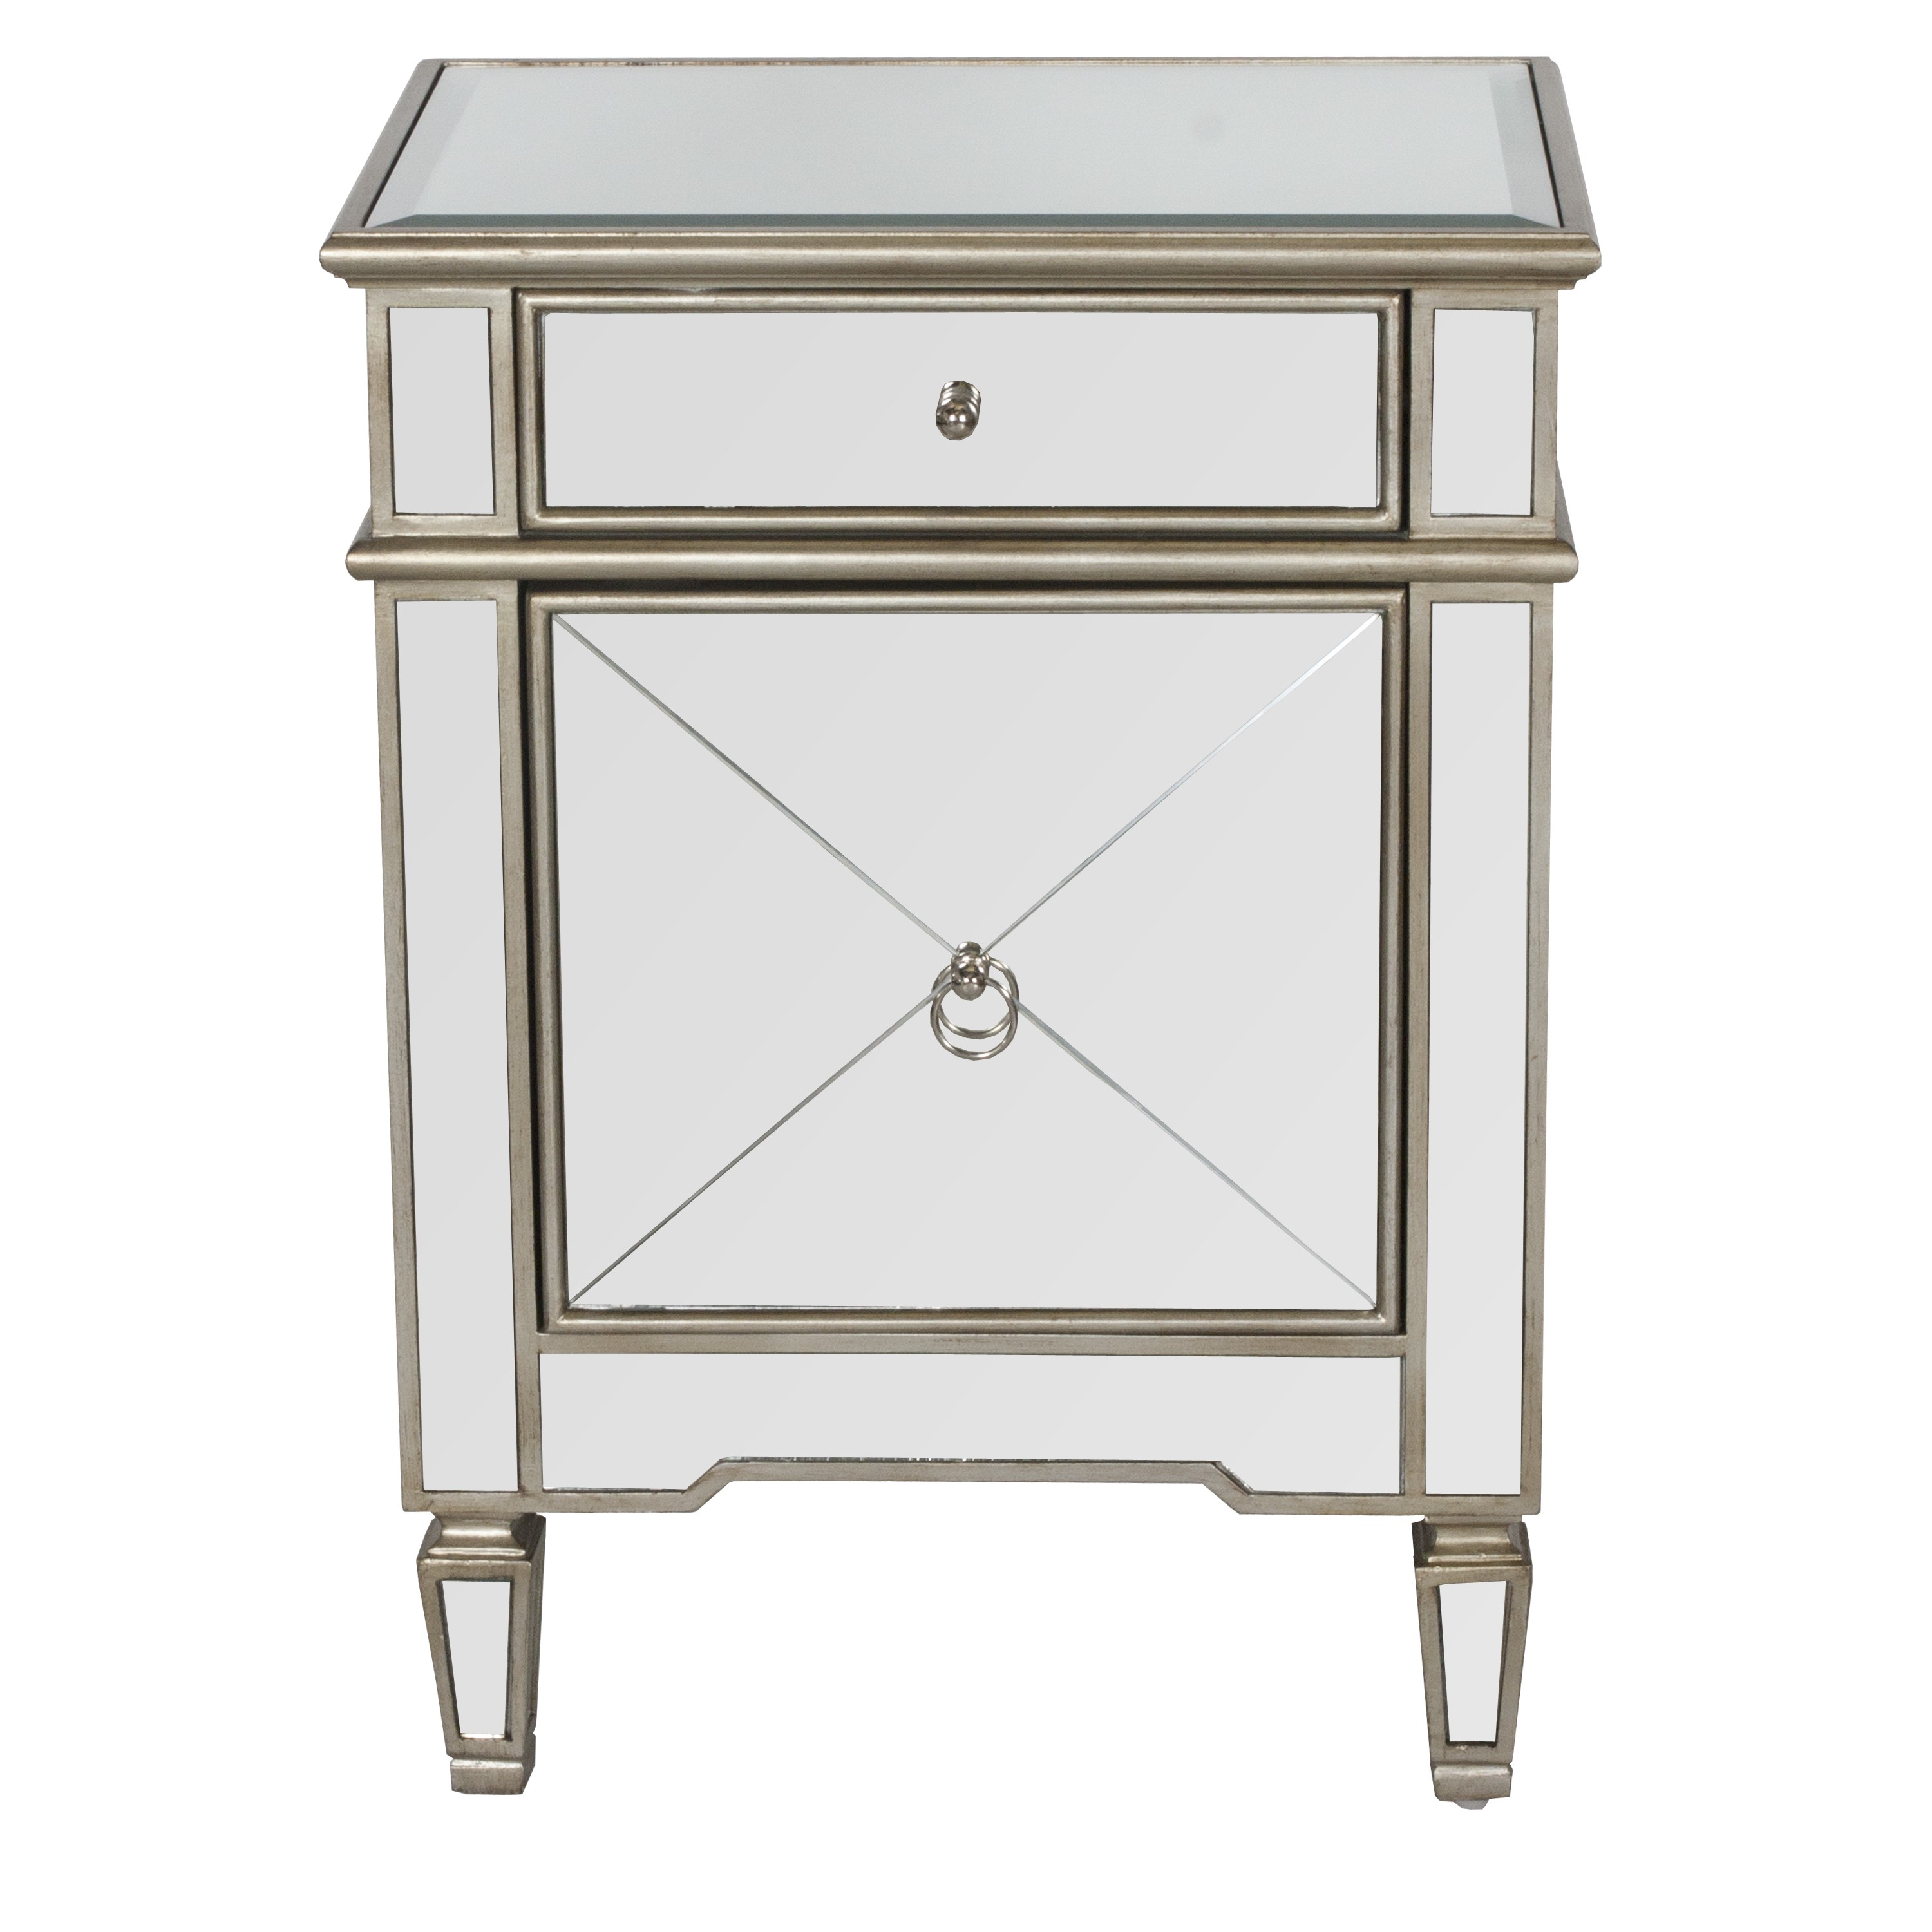 the outrageous cool mirrored nightstand from target ideas hotxpress claudette side tables casegoods collection funky floating rechargeable lamp rustic king size plans bentwood